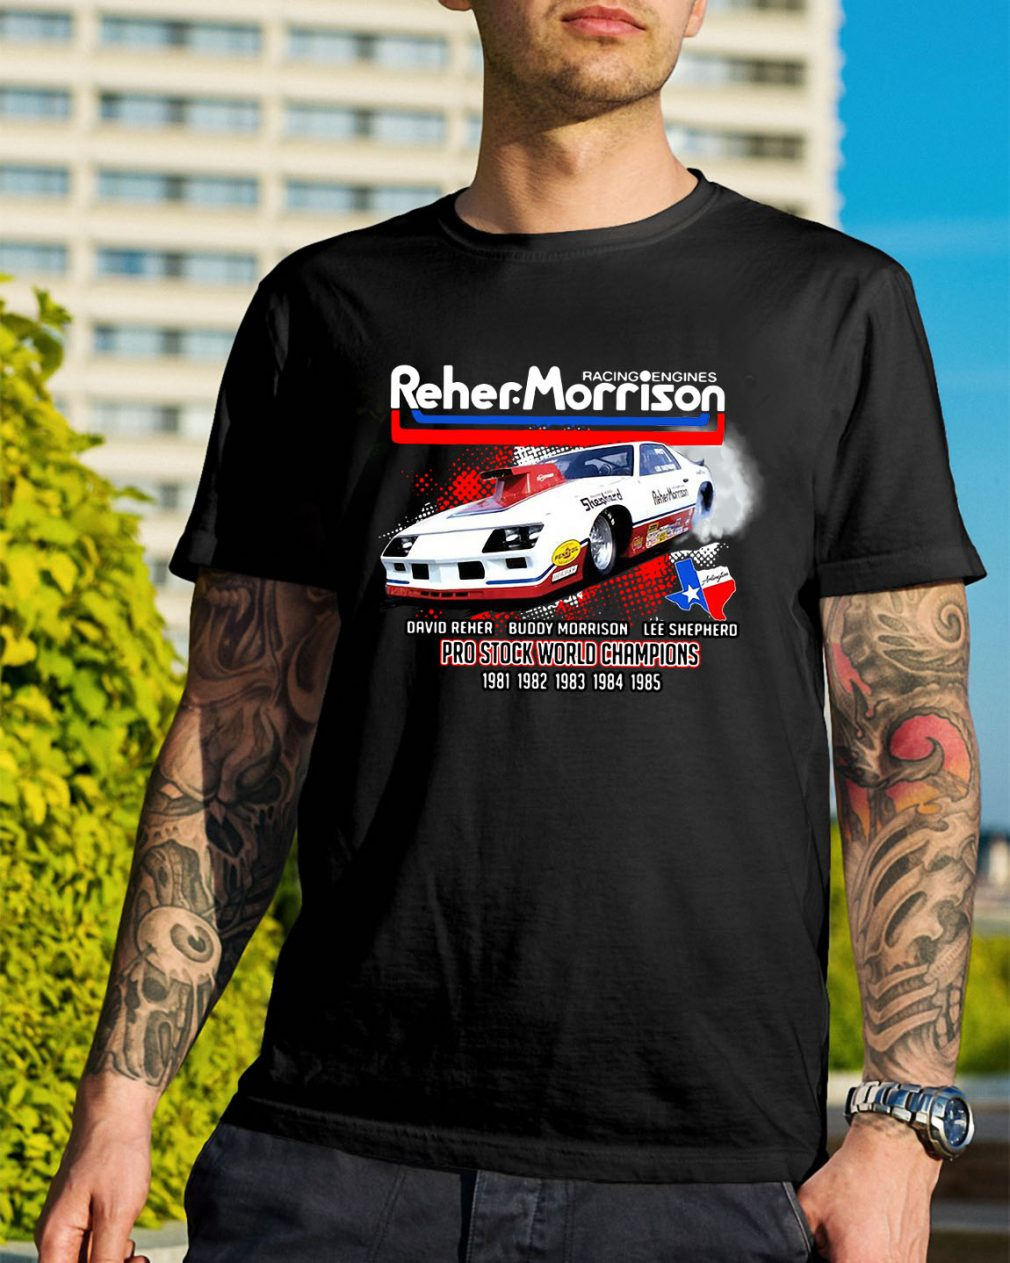 Racing engines Reher Morrison Devid Reher Buddy Morrison shirt